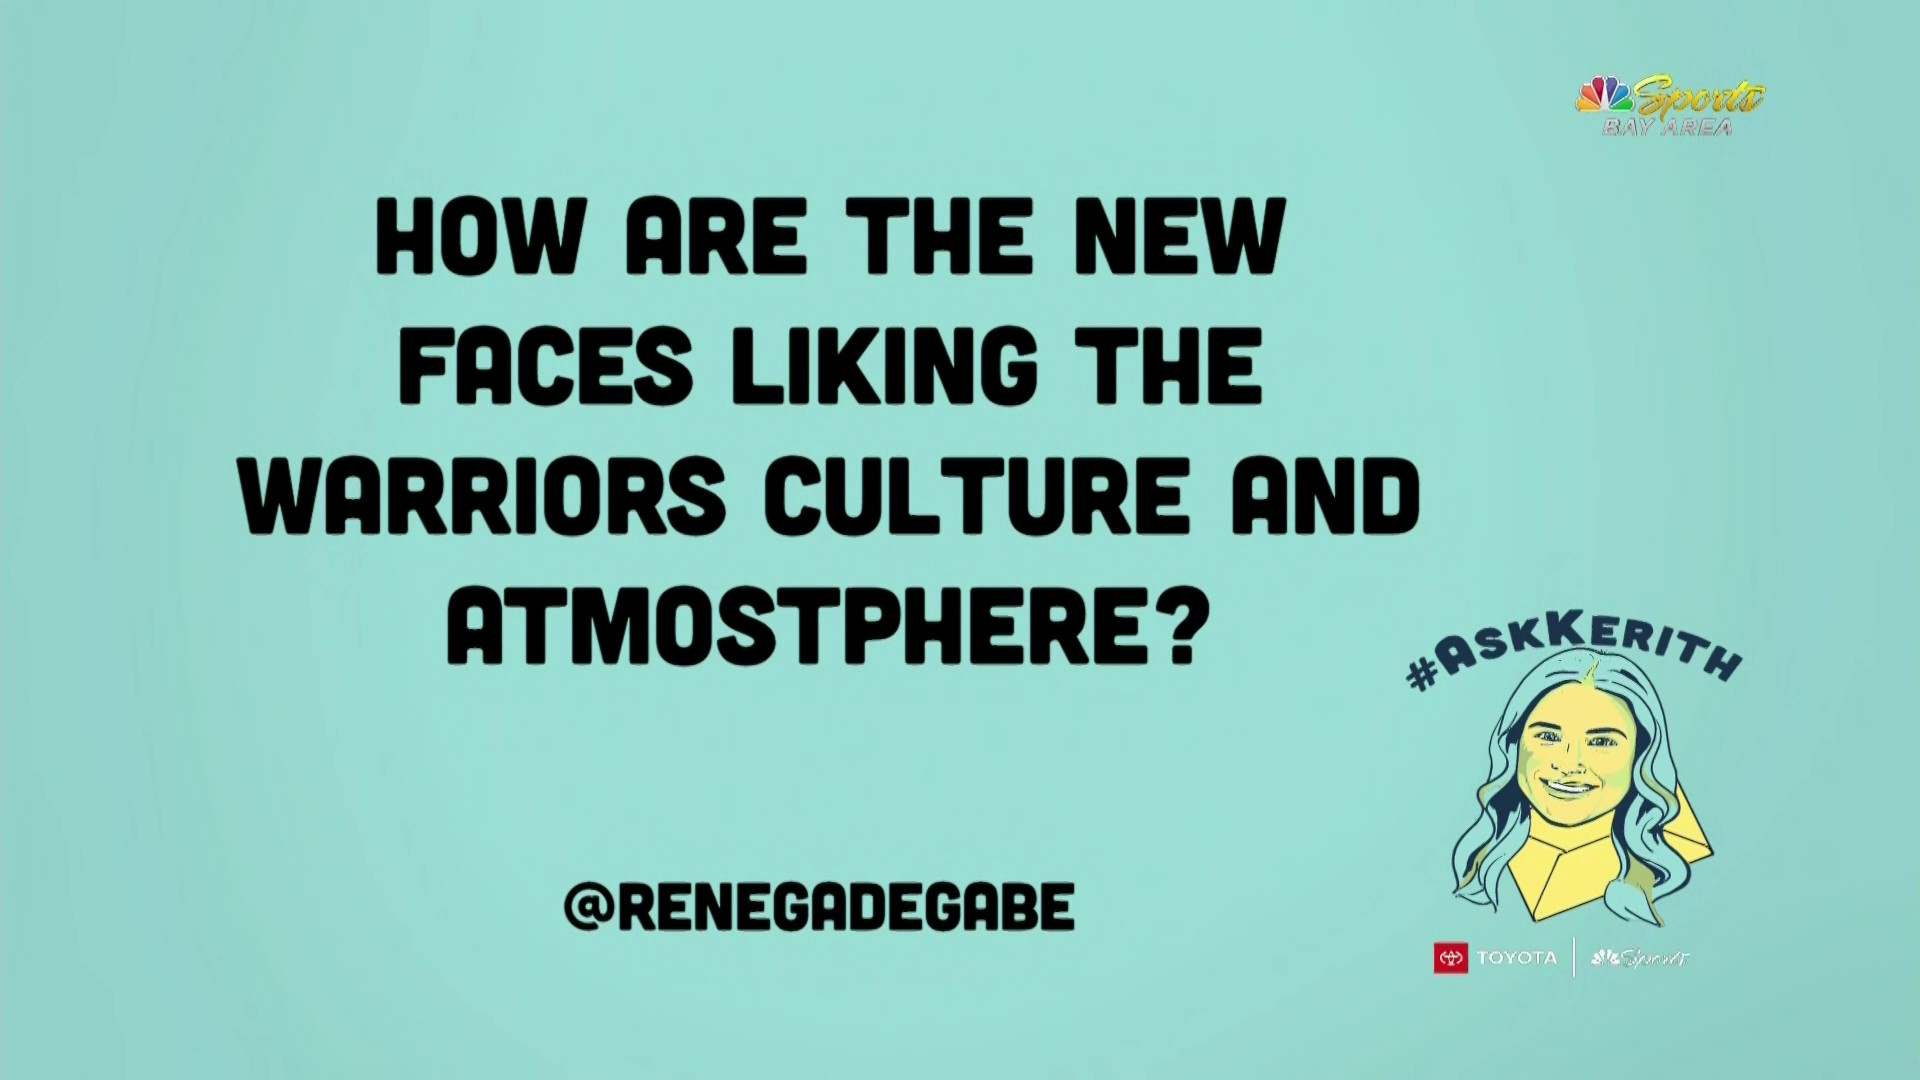 Ask Kerith: How are new faces liking Warriors' culture?